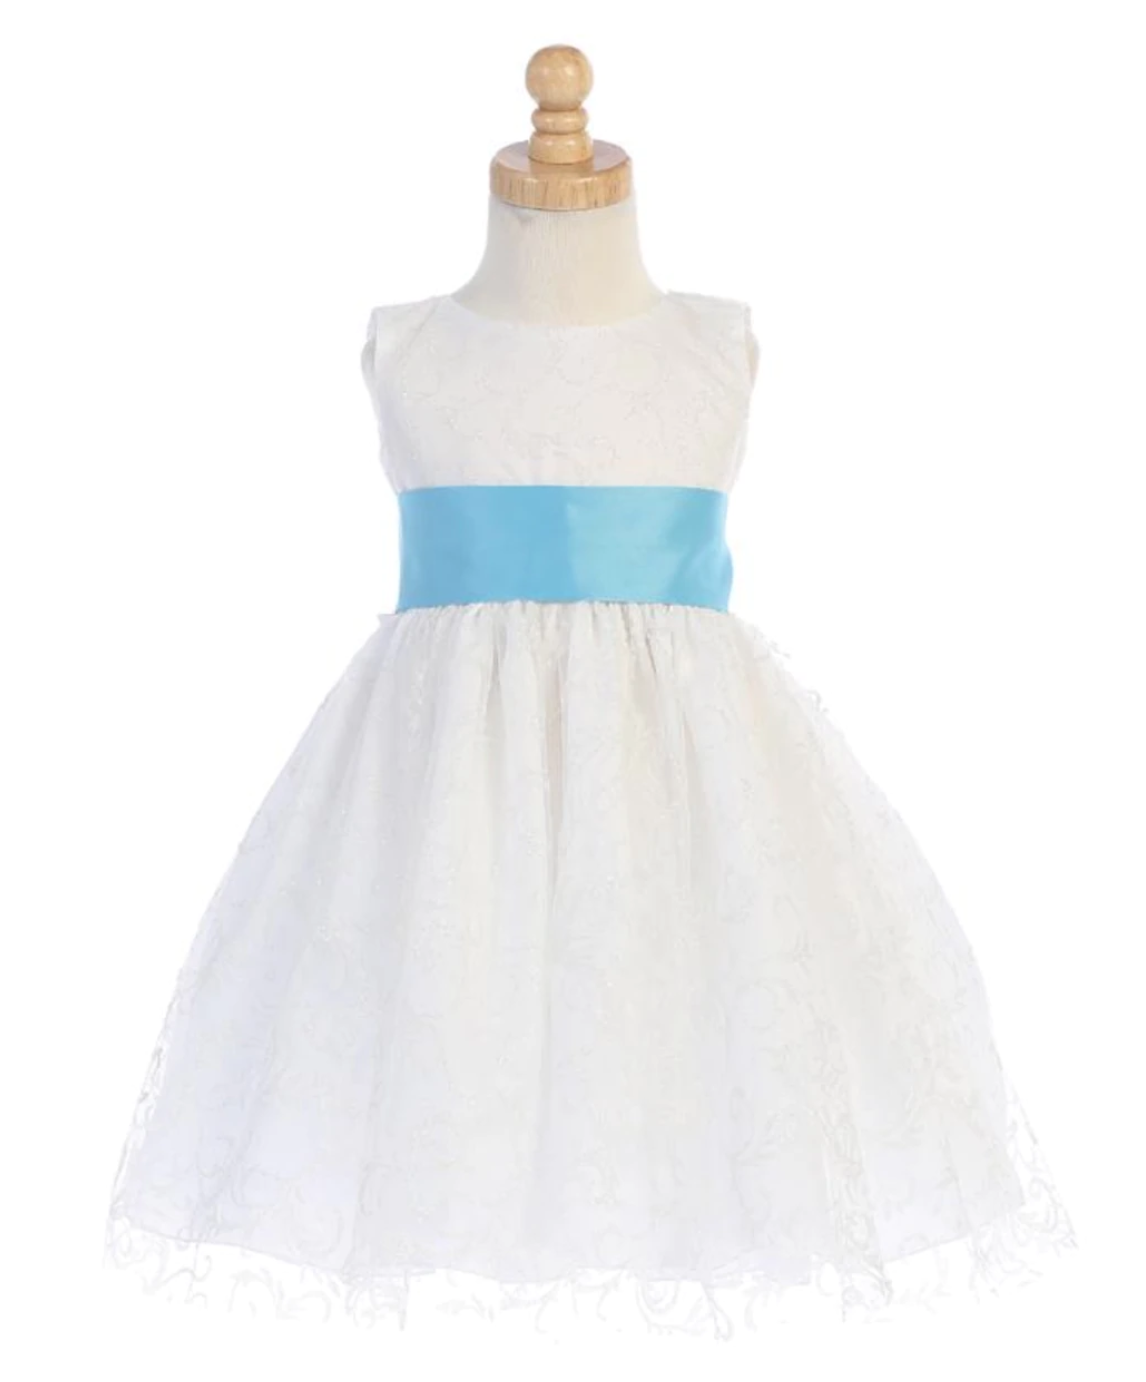 Girls White or Ivory Glitter Tulle Dress with Bow Sash